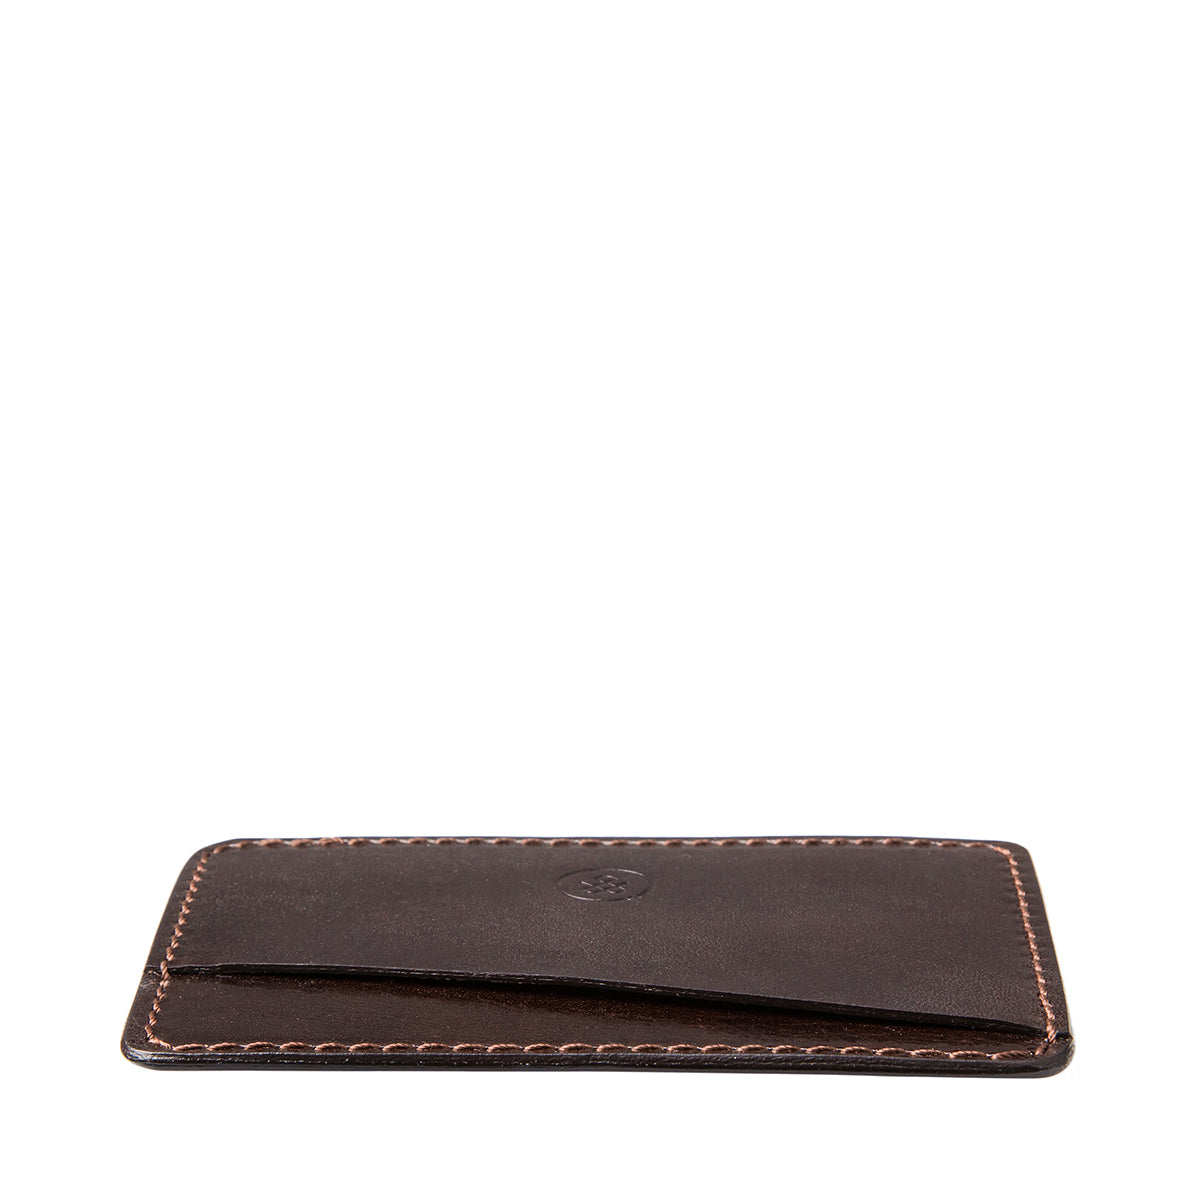 Image 6 of the 'Max' Luxury Brown Leather Card Case